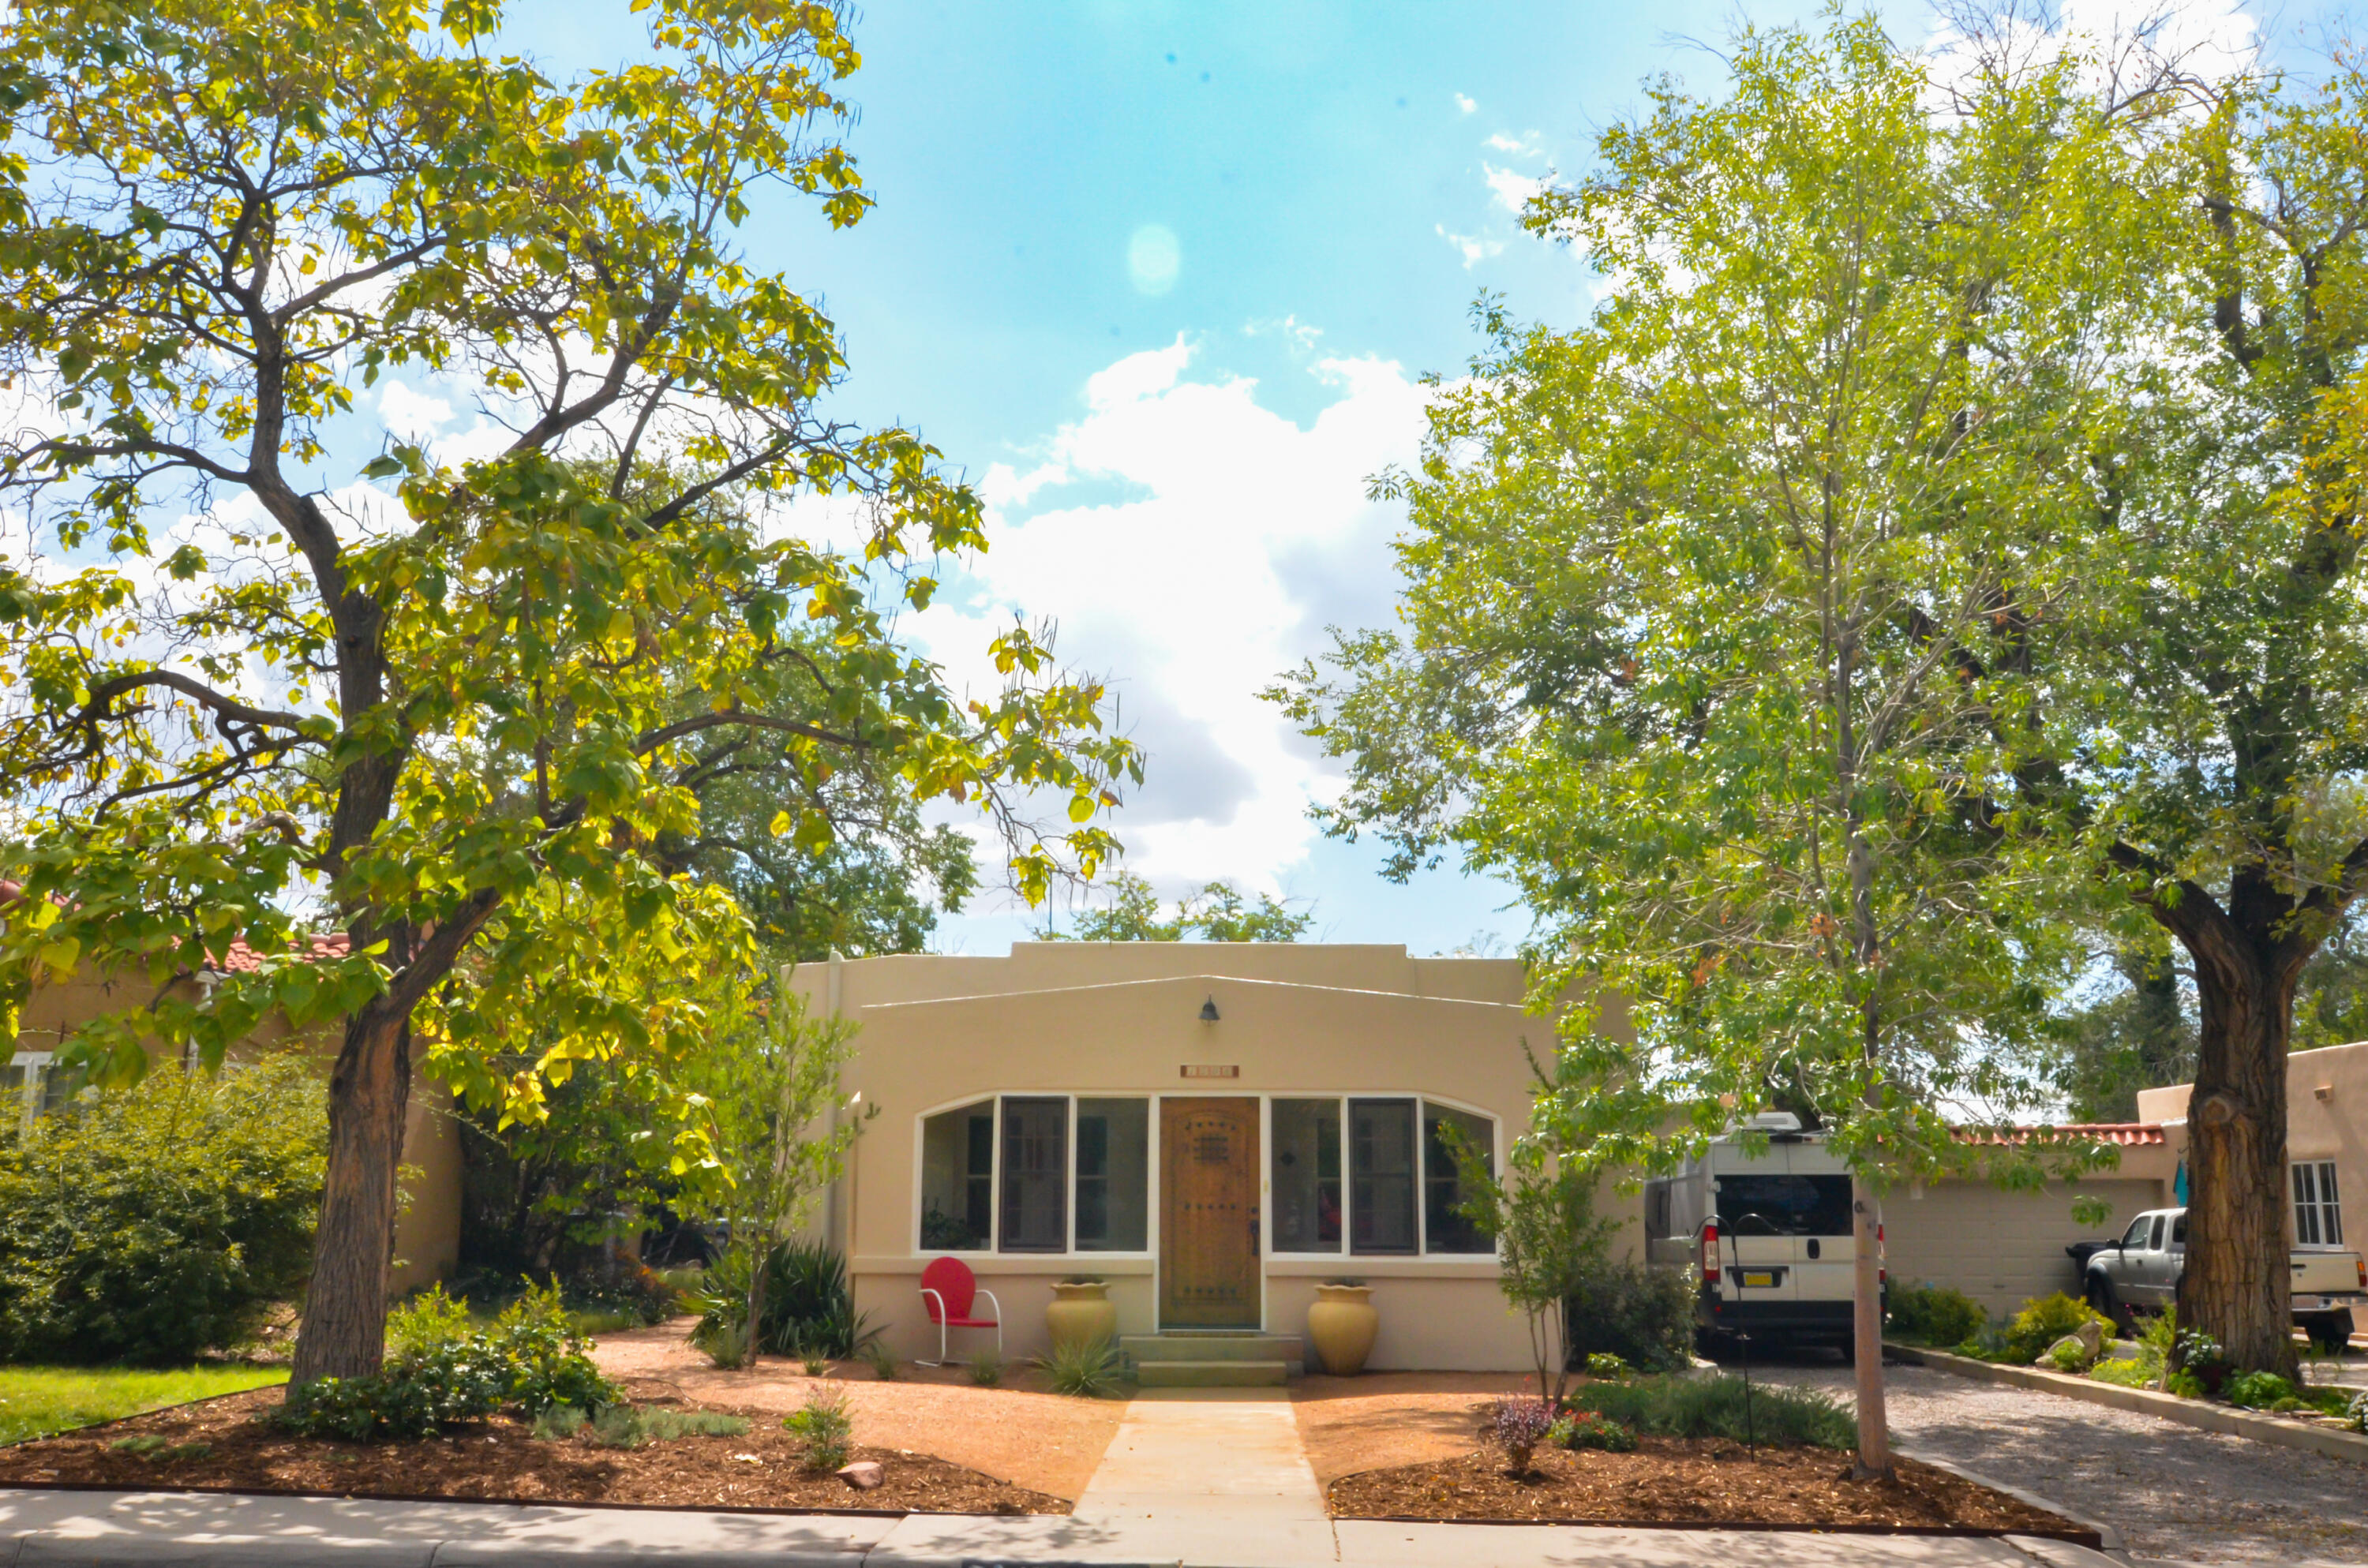 Spruce Park Charmer with Immaculate Appeal. A wonderful blend of vintage features + modern day conveniences.  For the pool enthusiast a rare find - Indoor Salt Water Pool with automatic cover.  Enjoy the front porch and wave to friendly neighbors all year long. Open floor plan is entertaining friendly with polished hardwood floors, fireplace (wood insert for chilly evening)s & original built in book cases. Opening off  living room is a study or 3rd bedroom . Spacious master retreat offers a sitting room, ample closet space & direct access to the pool. Murphy bed in bedroom 2. Mini splits in addition to CFA  for great heat control and refrigerated cooling in the summer.  A short block to the park, a longer block to UNM. Downtown, hospitals, Nob Hill all close by - best location!